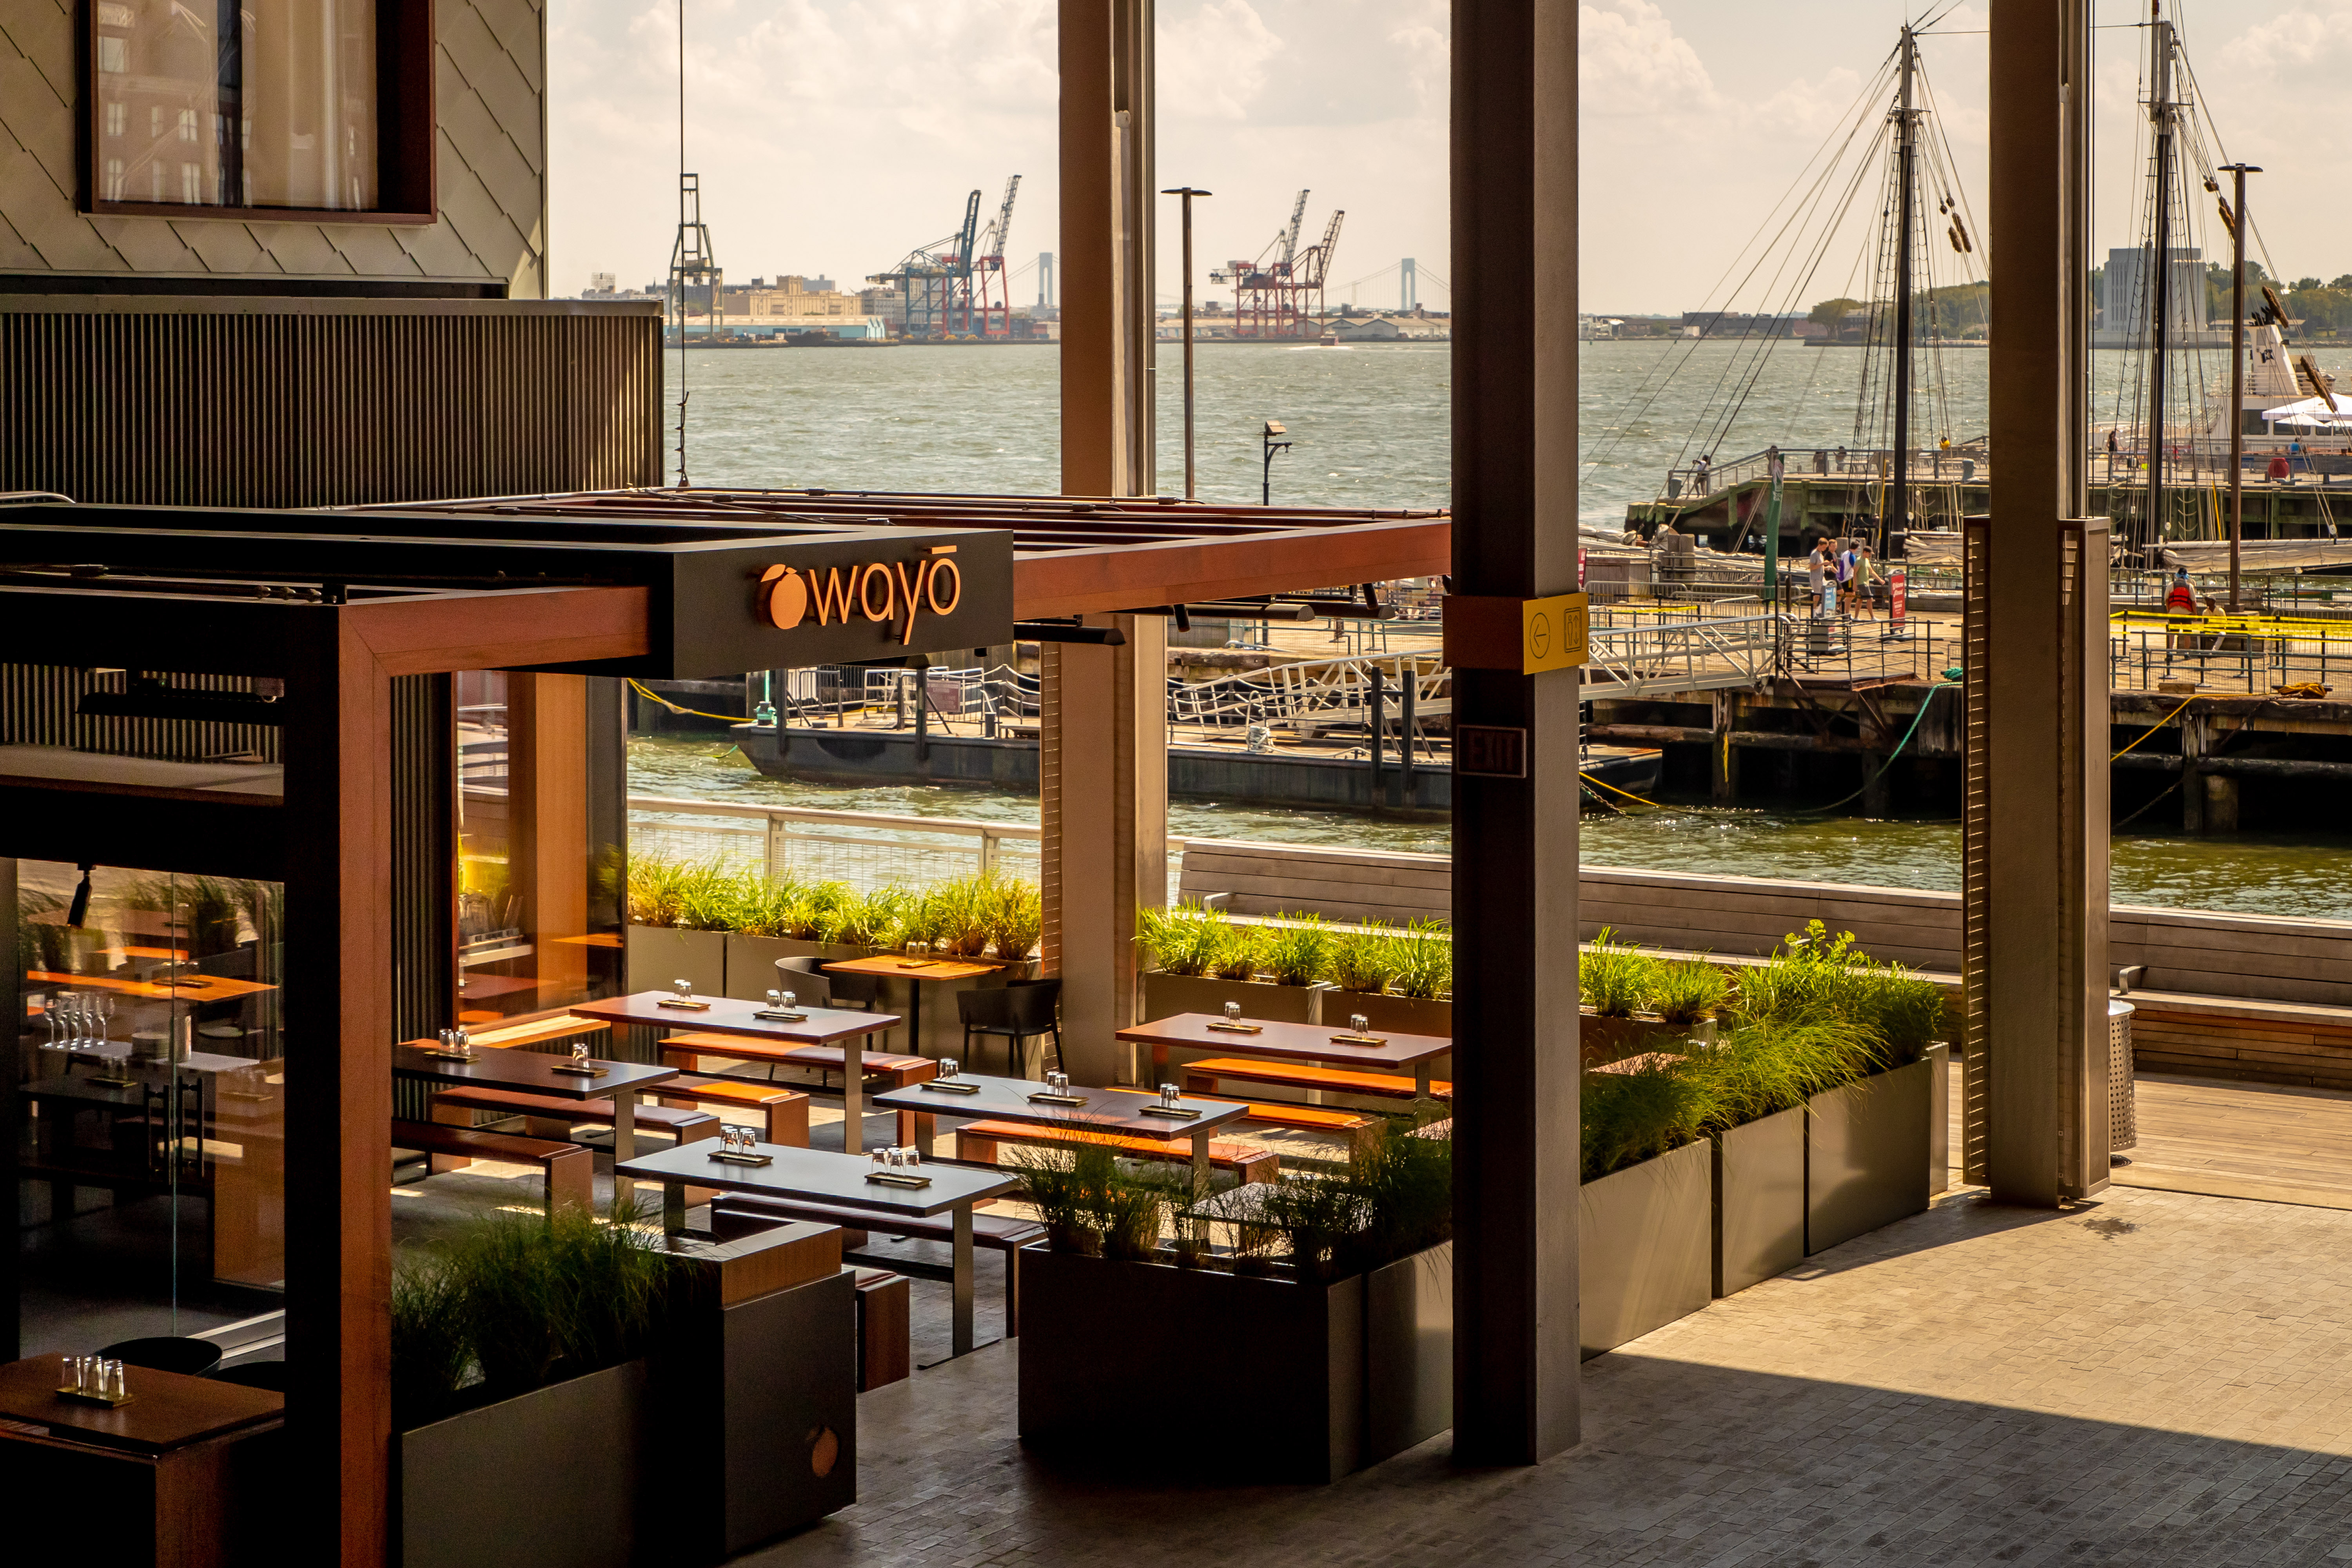 Bar Wayo and the harbor beyond, with ships in the background